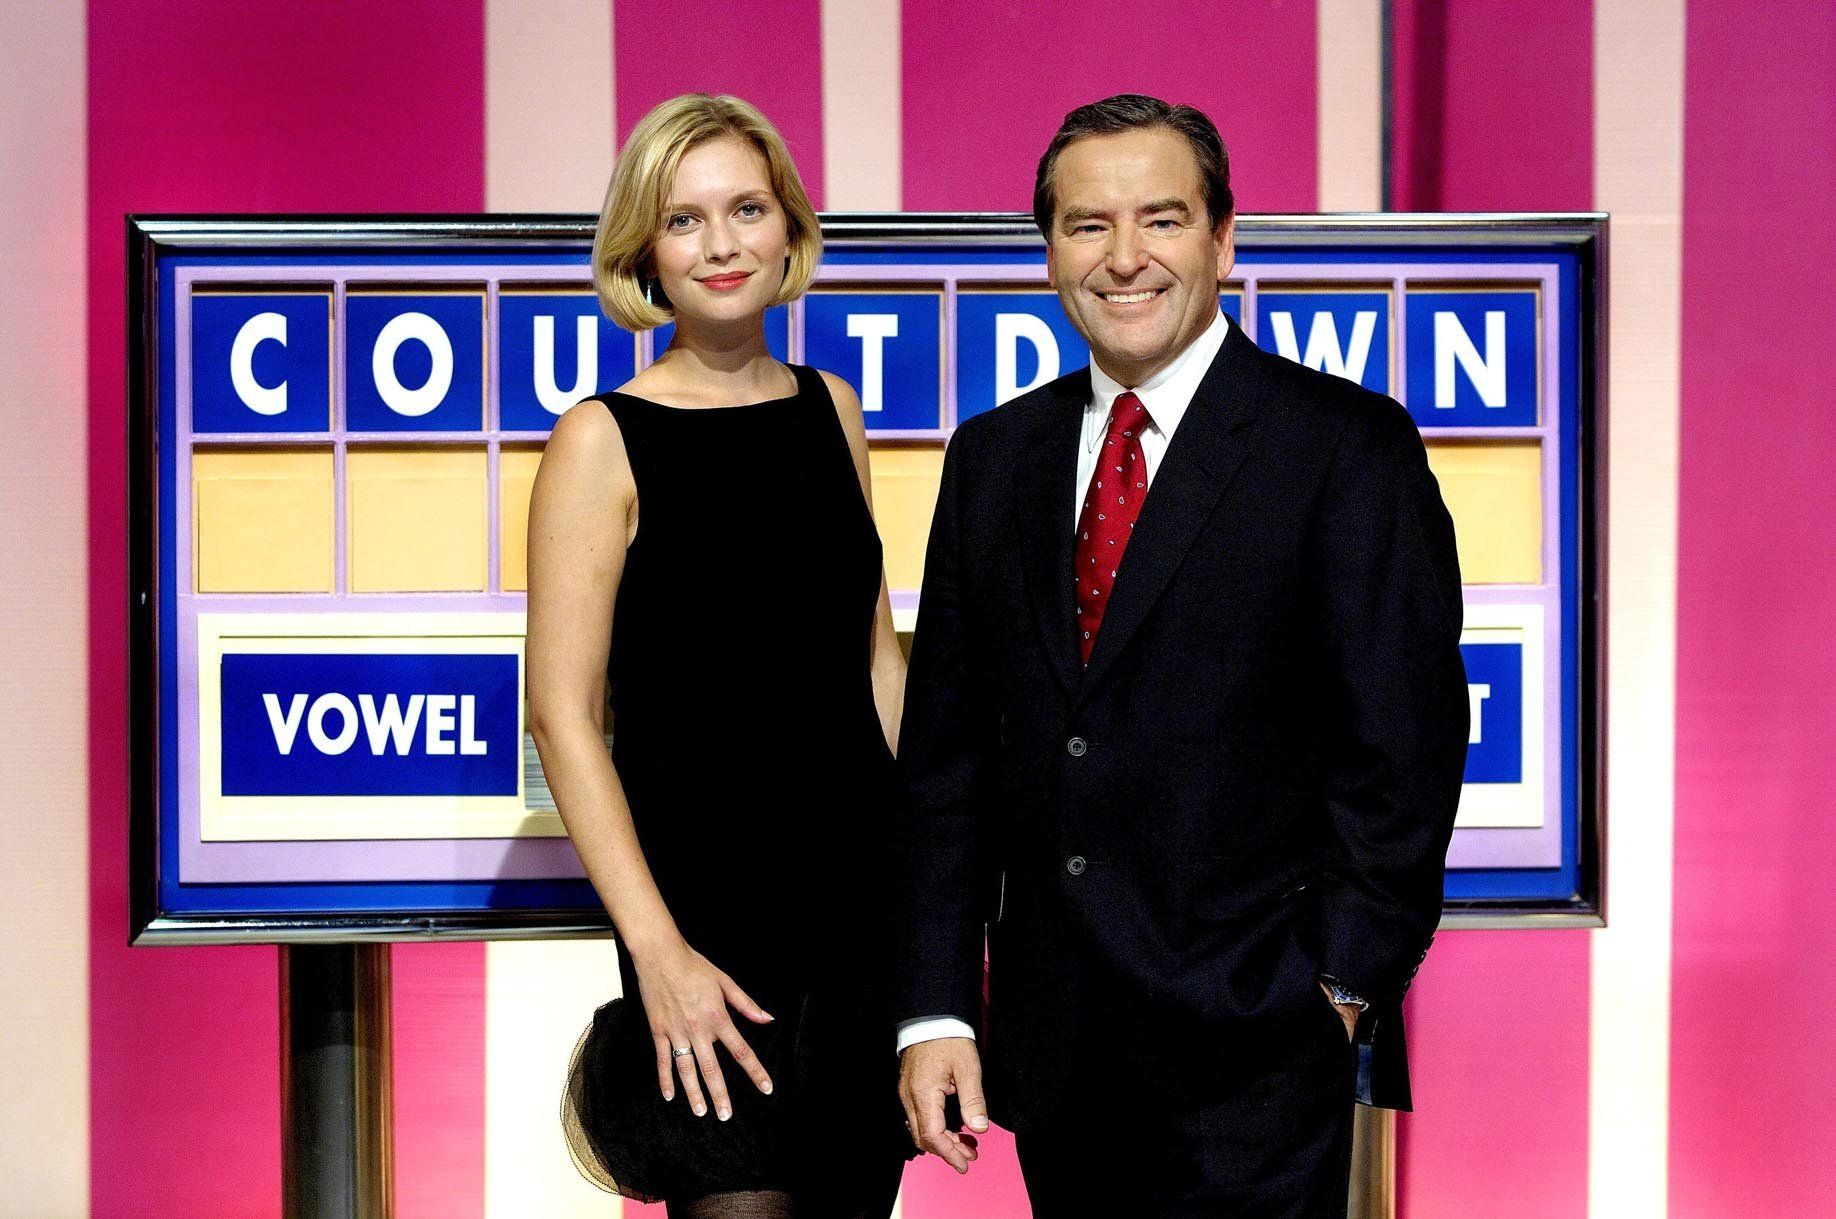 Countdown's Rachel And Jeff Set For TV